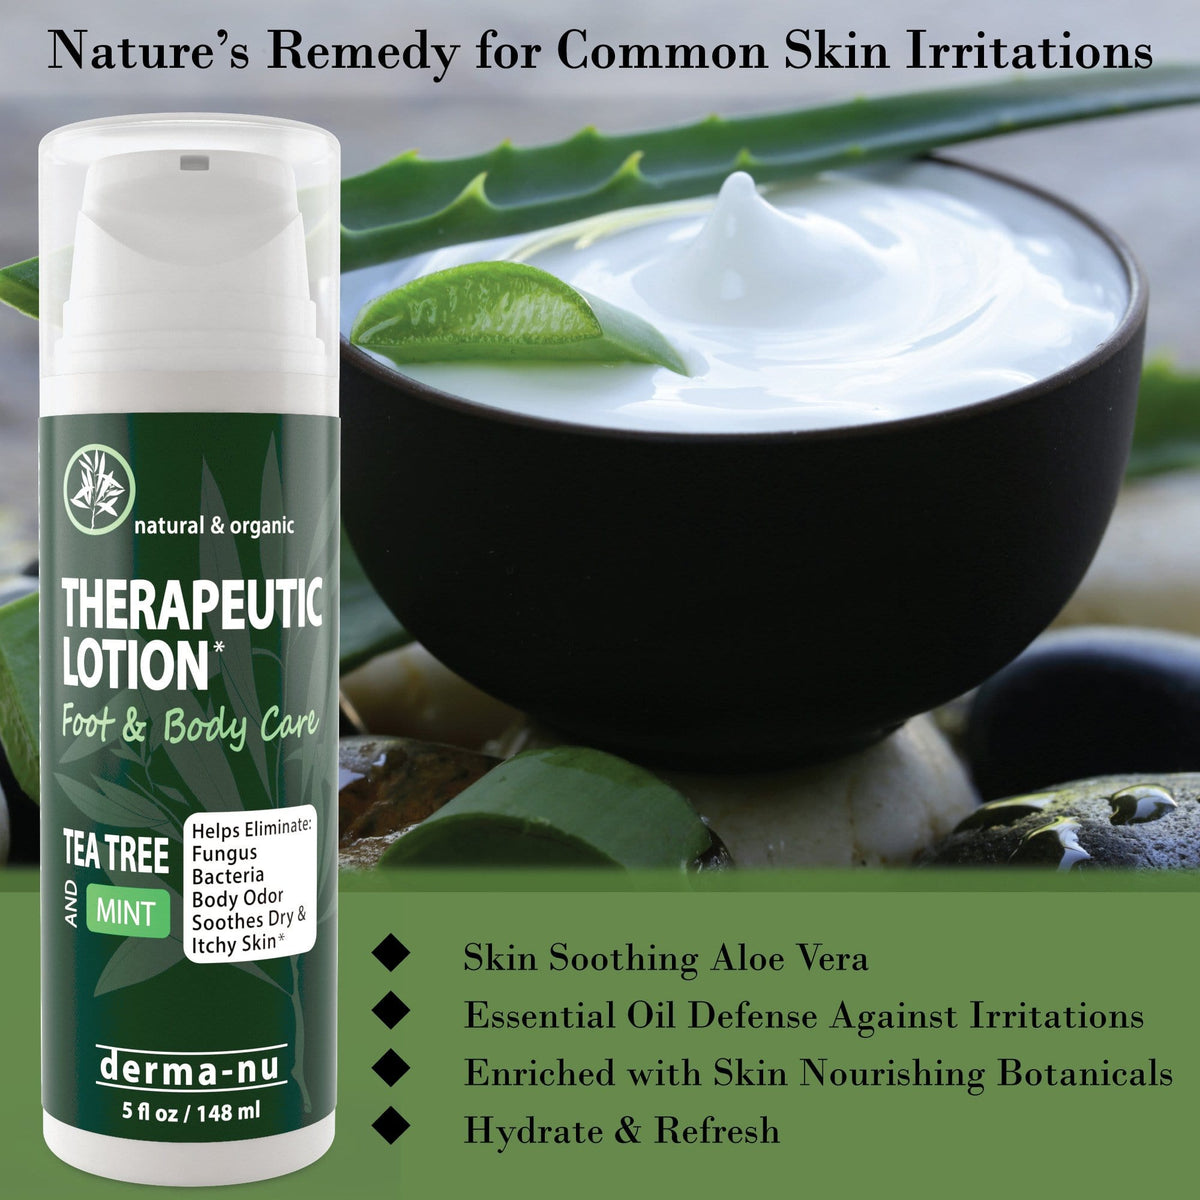 Therapeutic Tea Tree Lotion – Antifungal & Anti Itch Cream for Feet and Body